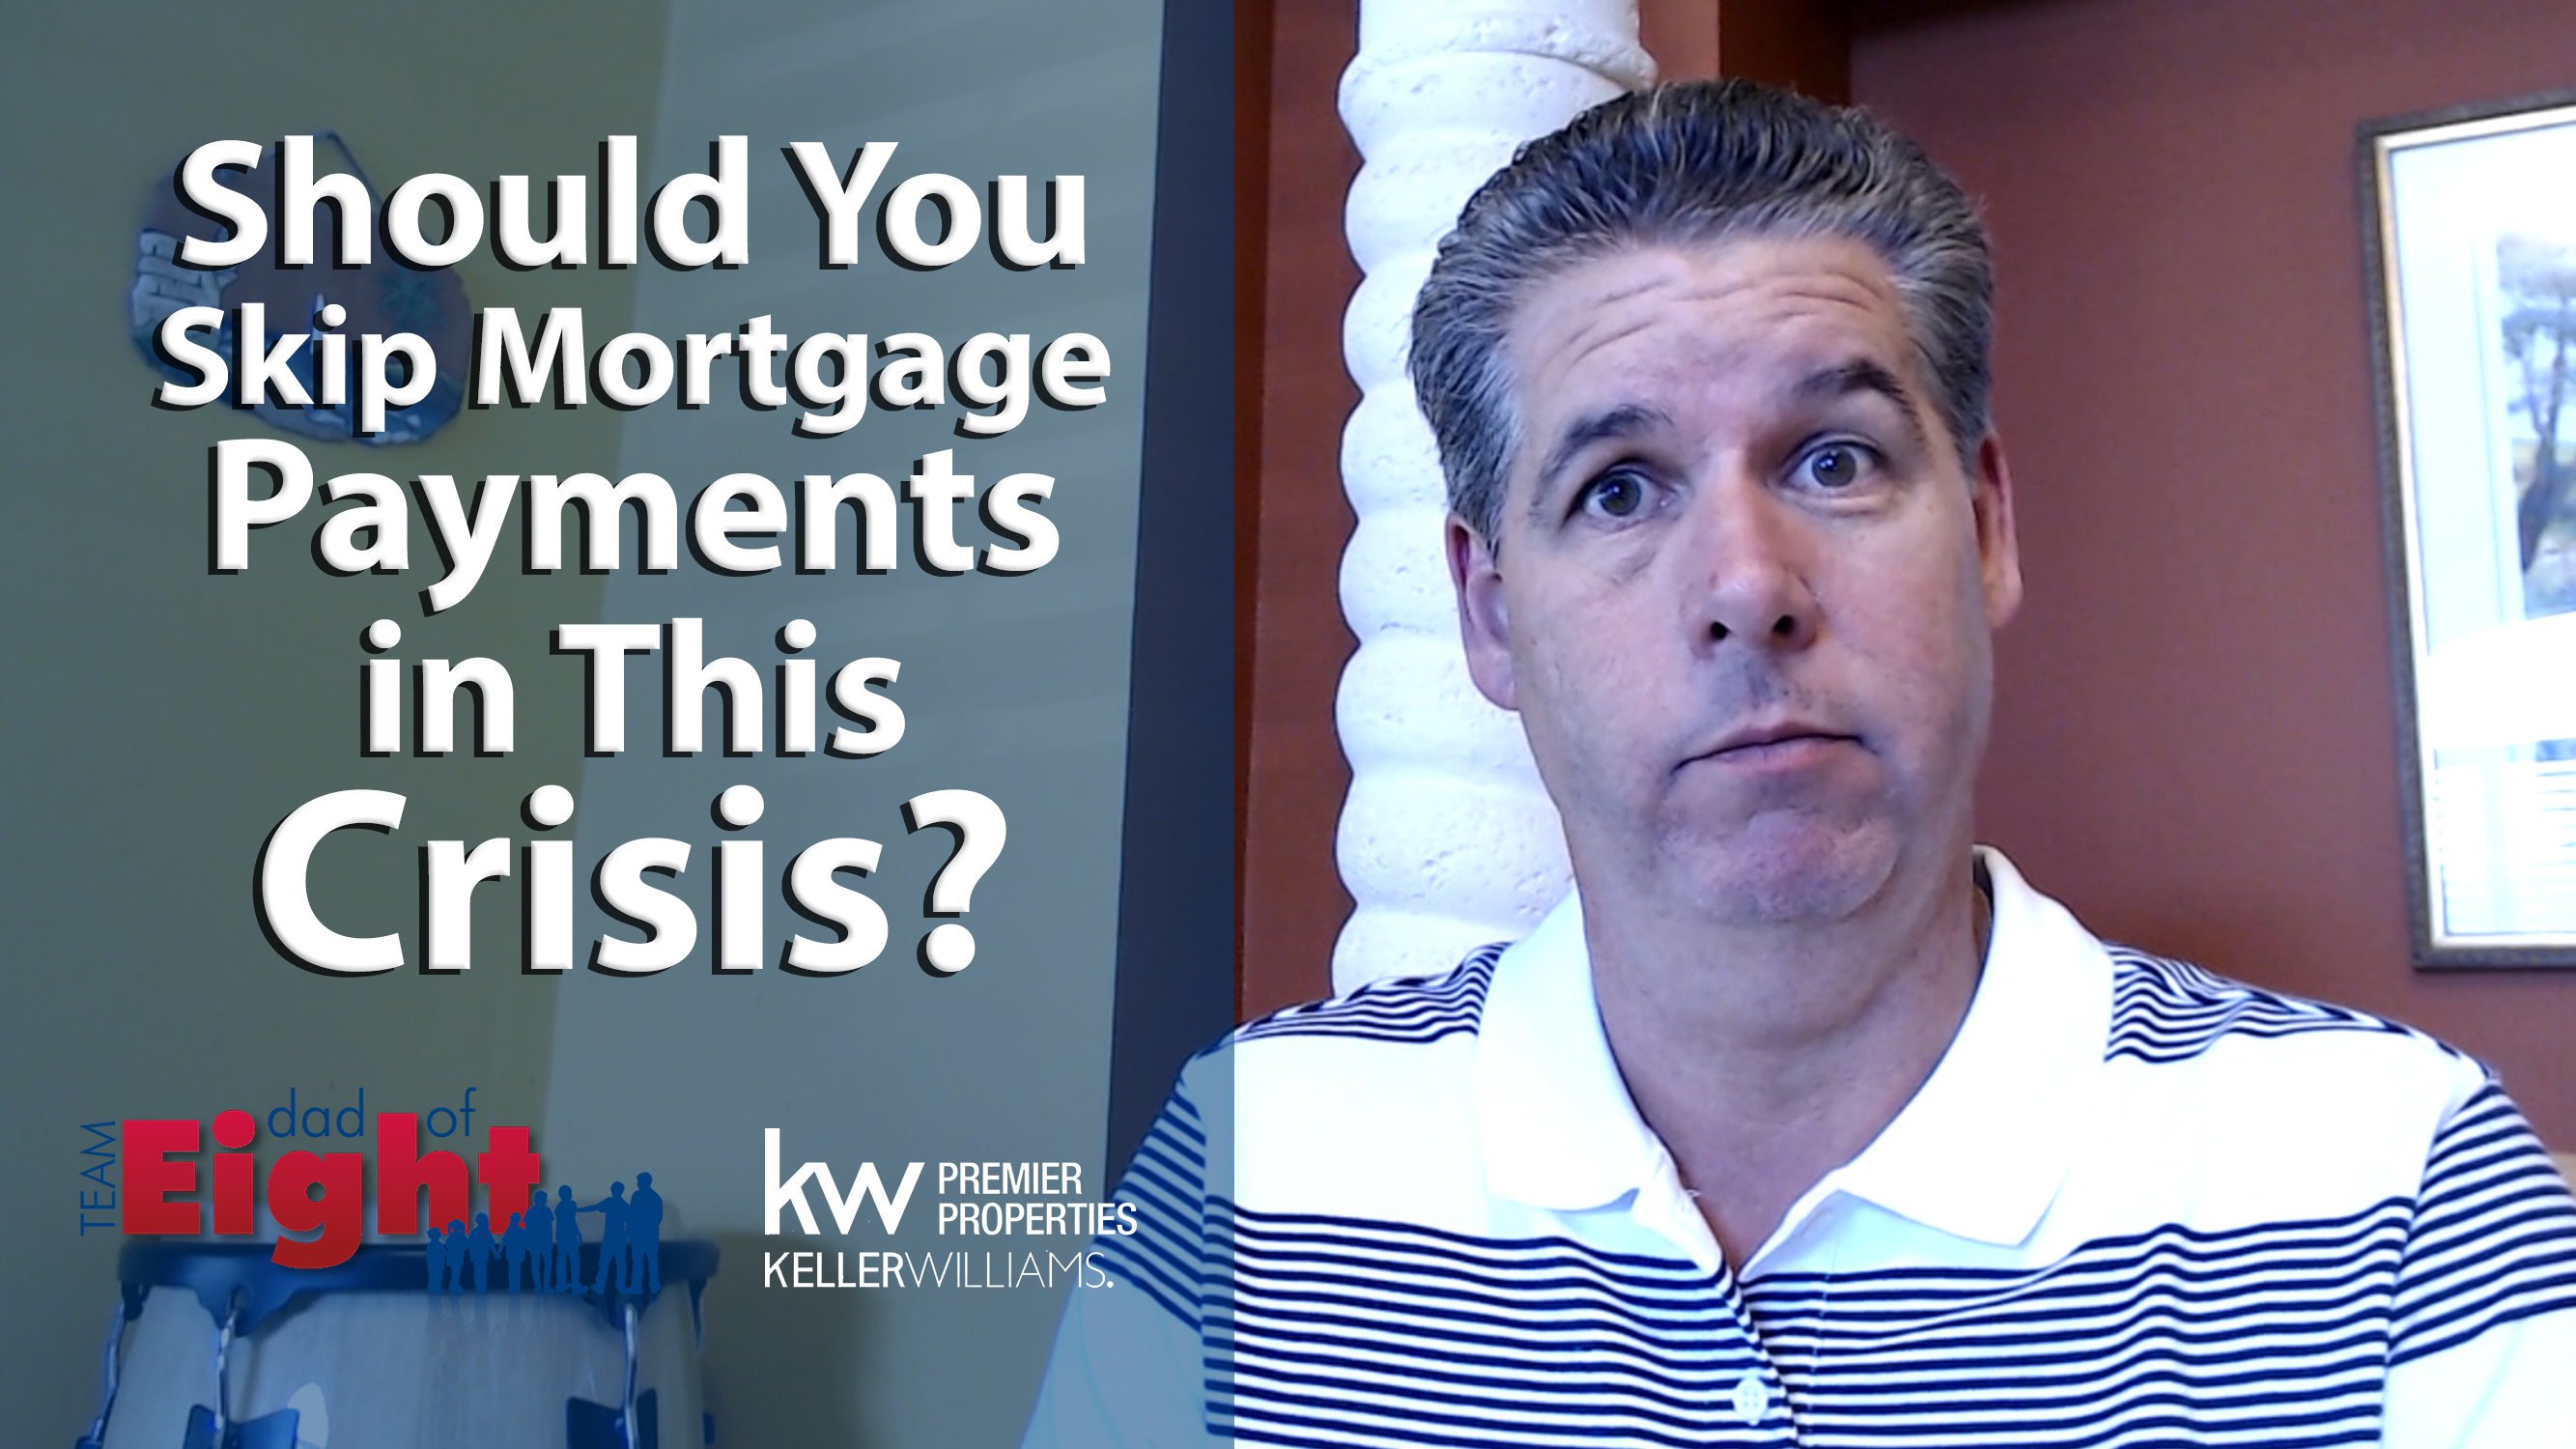 Does the COVID-19 Cares Act Stimulus Plan Allow for You to Skip Mortgage Payments?